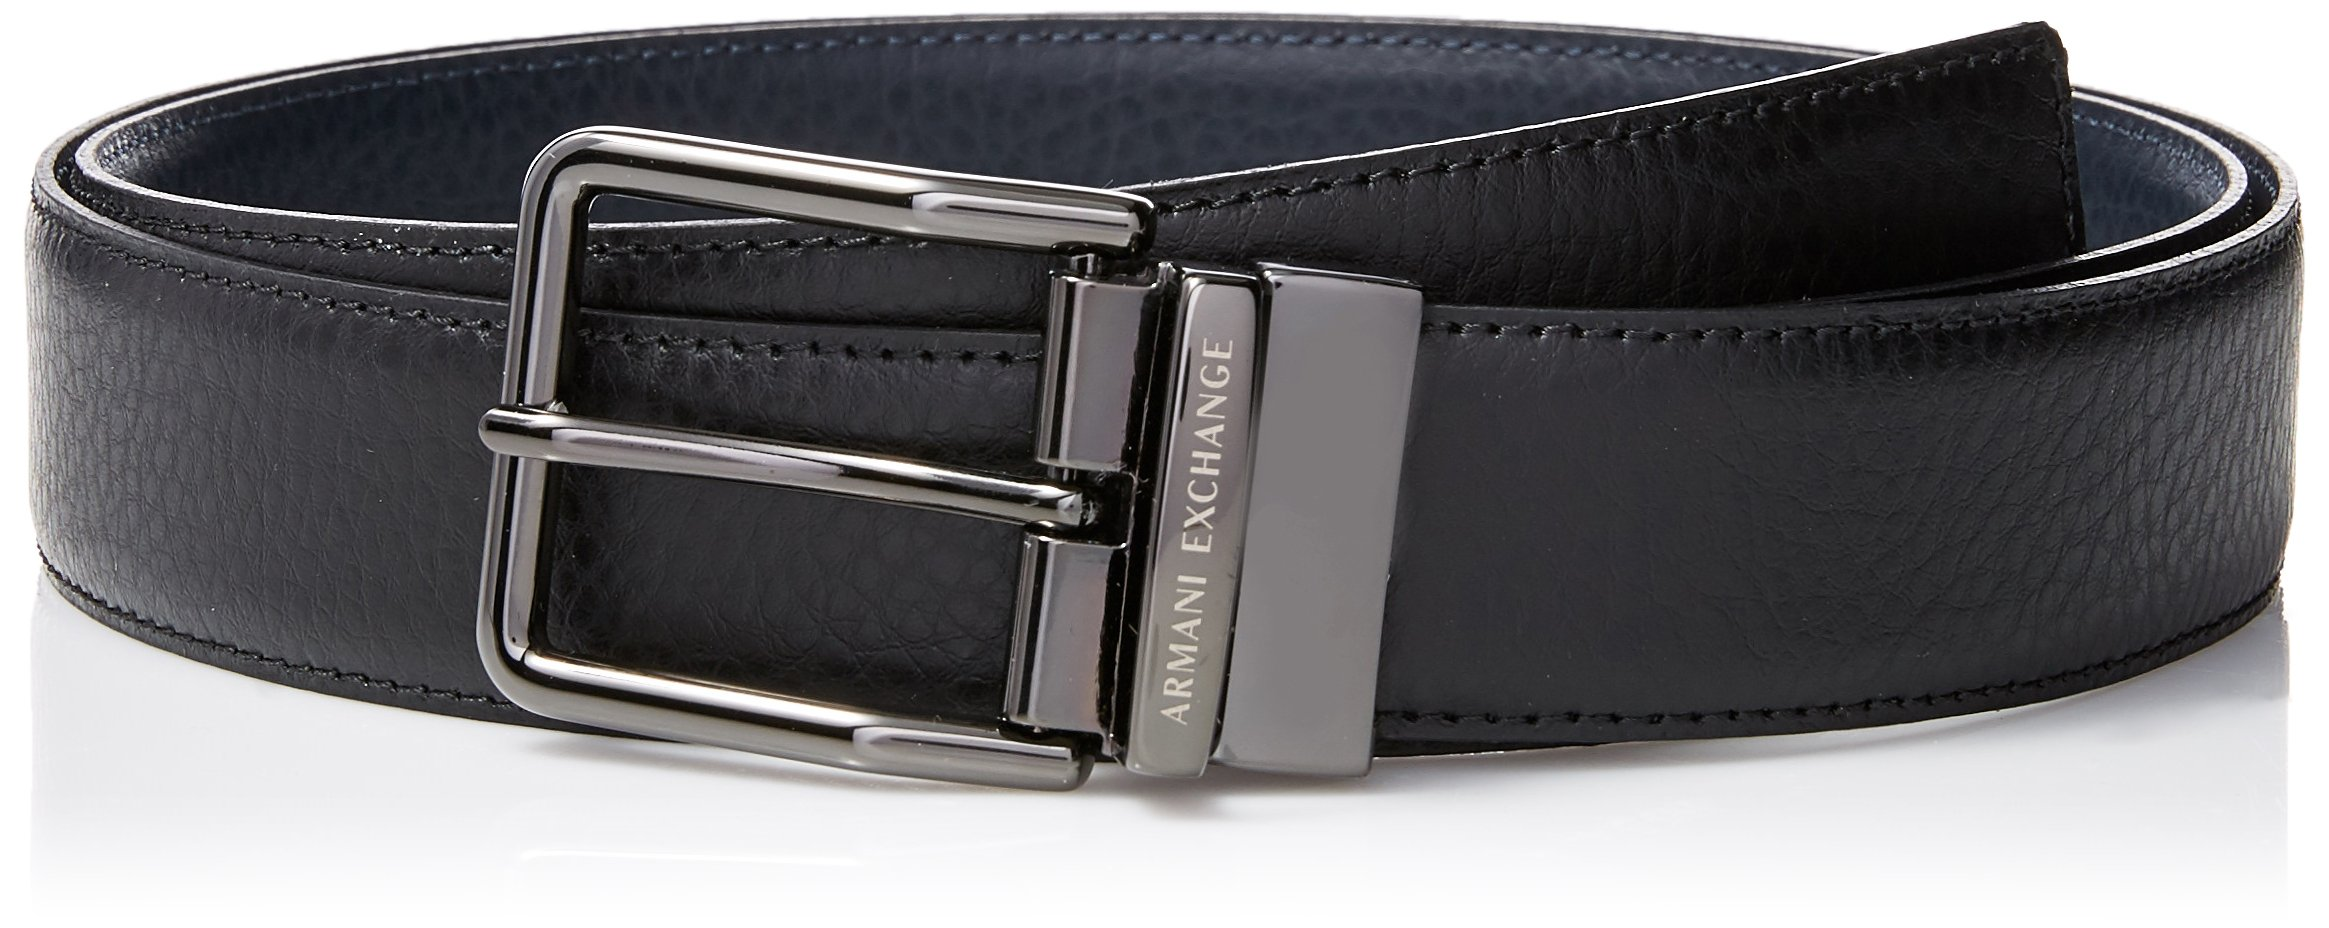 Armani Exchange Men's Cut to Fit Belt with 2 Buckels in a Box, Black/Navy, One Size